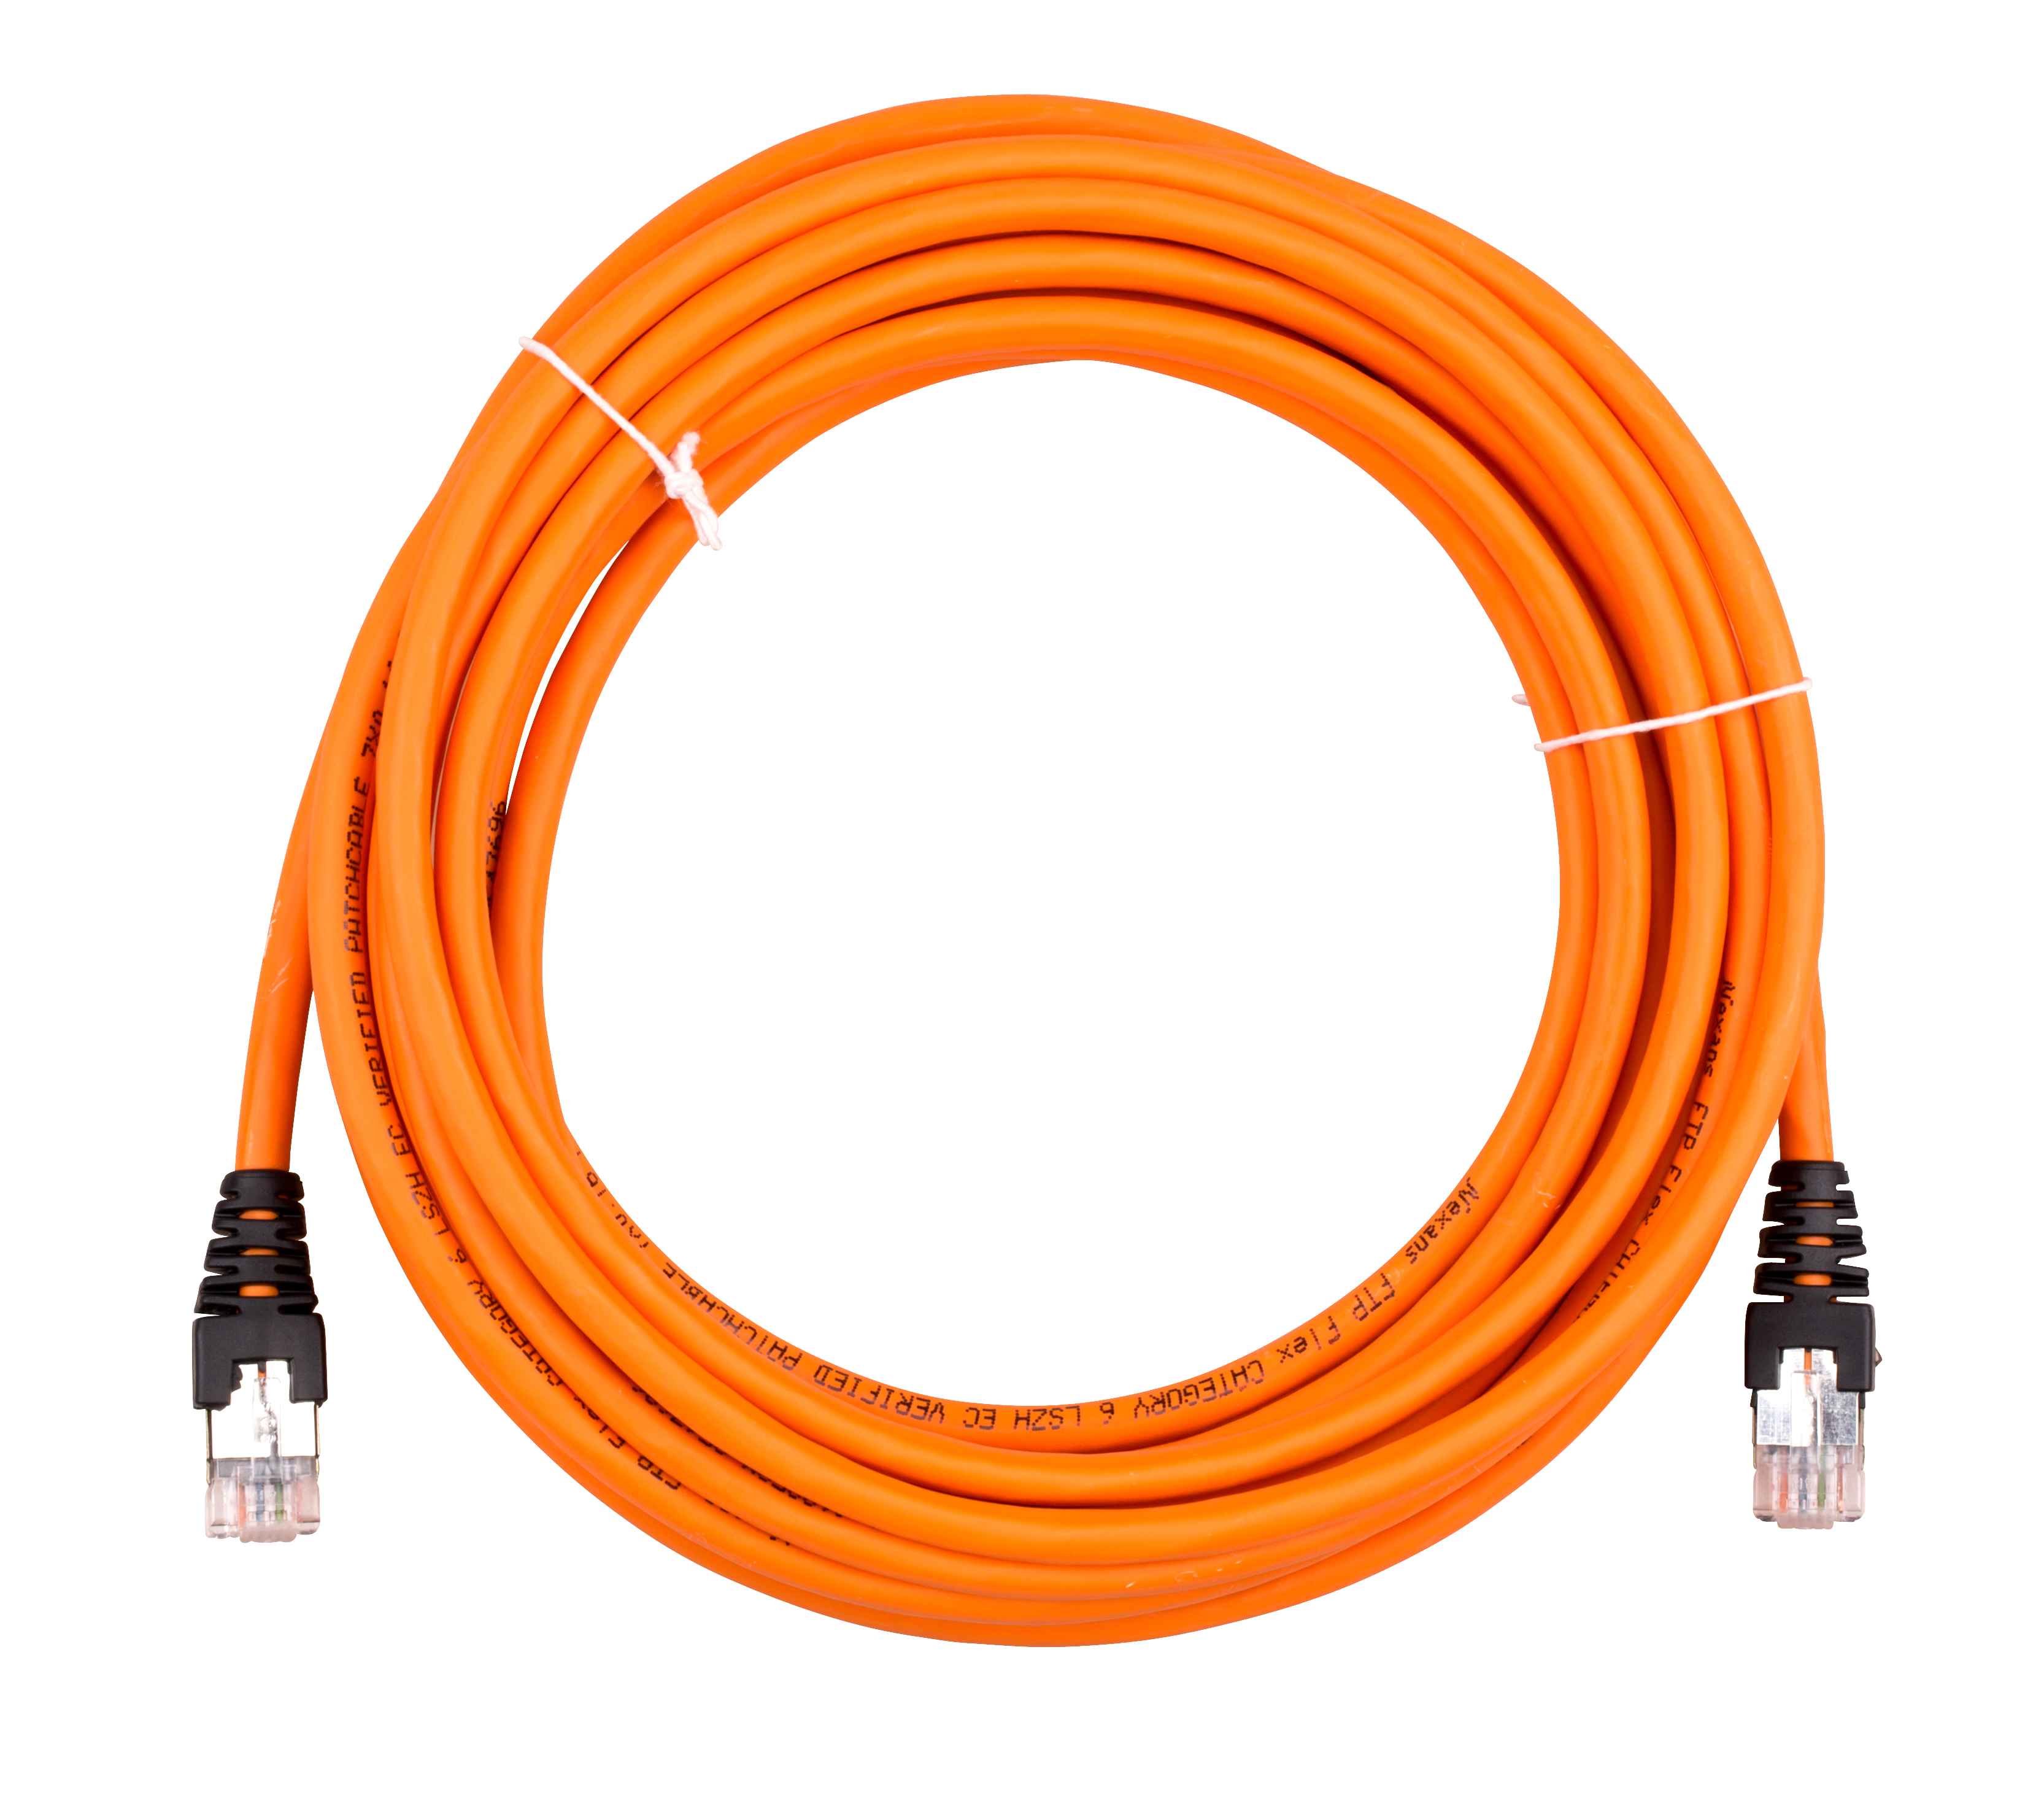 1 Stk Patchkabel RJ45 geschirmt, Cat.6, LSOH, orange, 5,0m HNXR121605